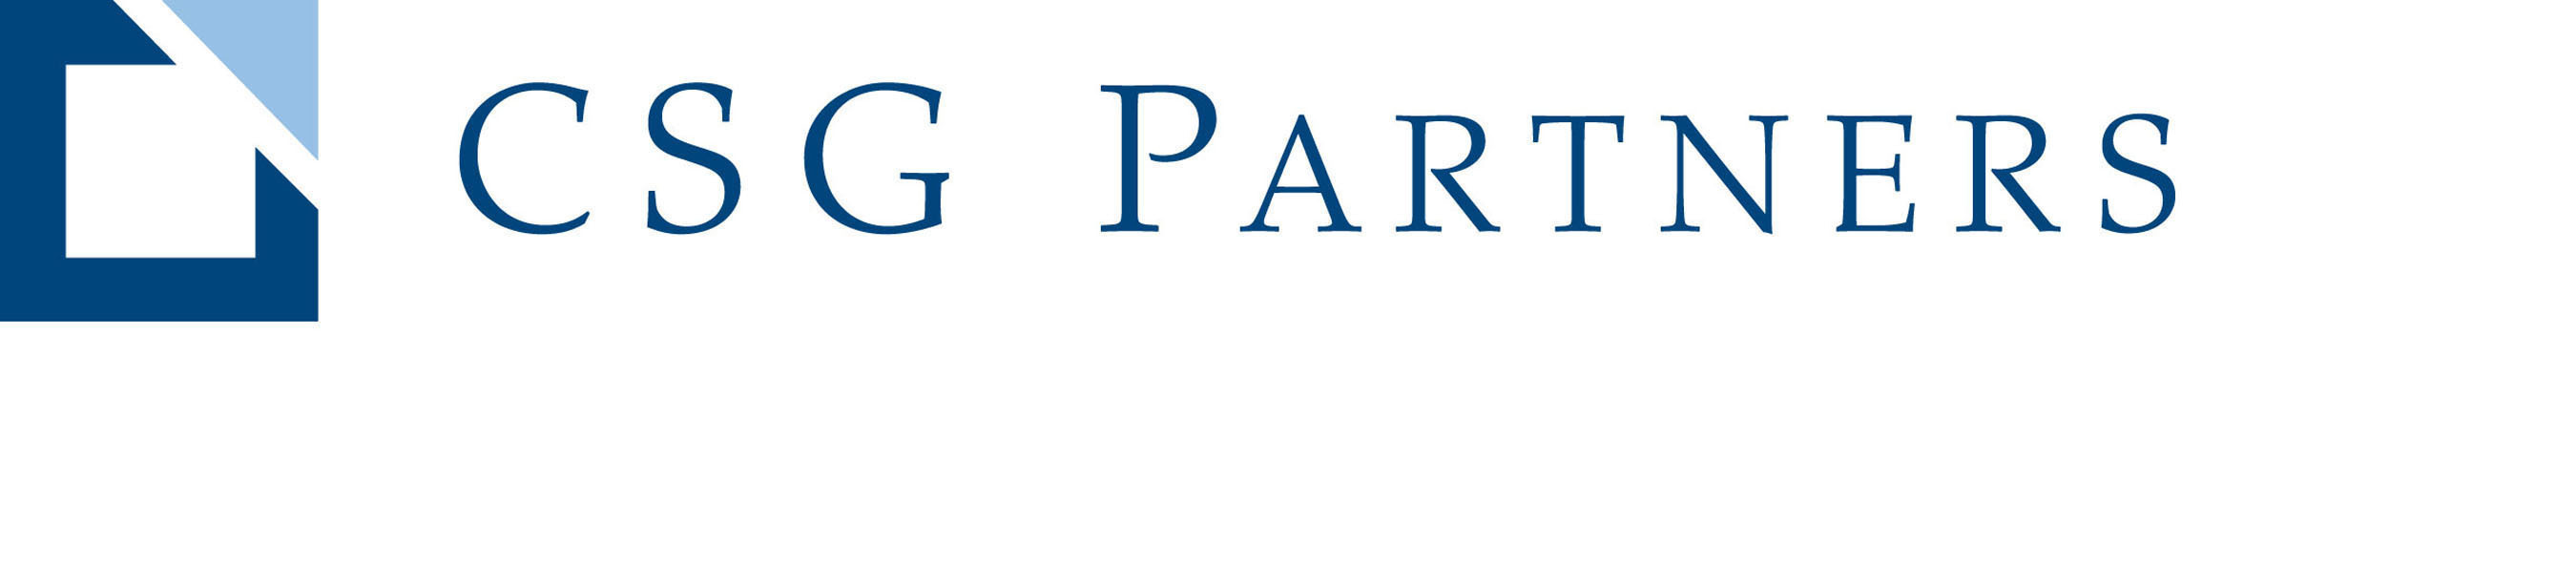 CSG Partners; Expertise, Access, Results. CSG Partners is a boutique investment bank specializing in ESOPs, ...